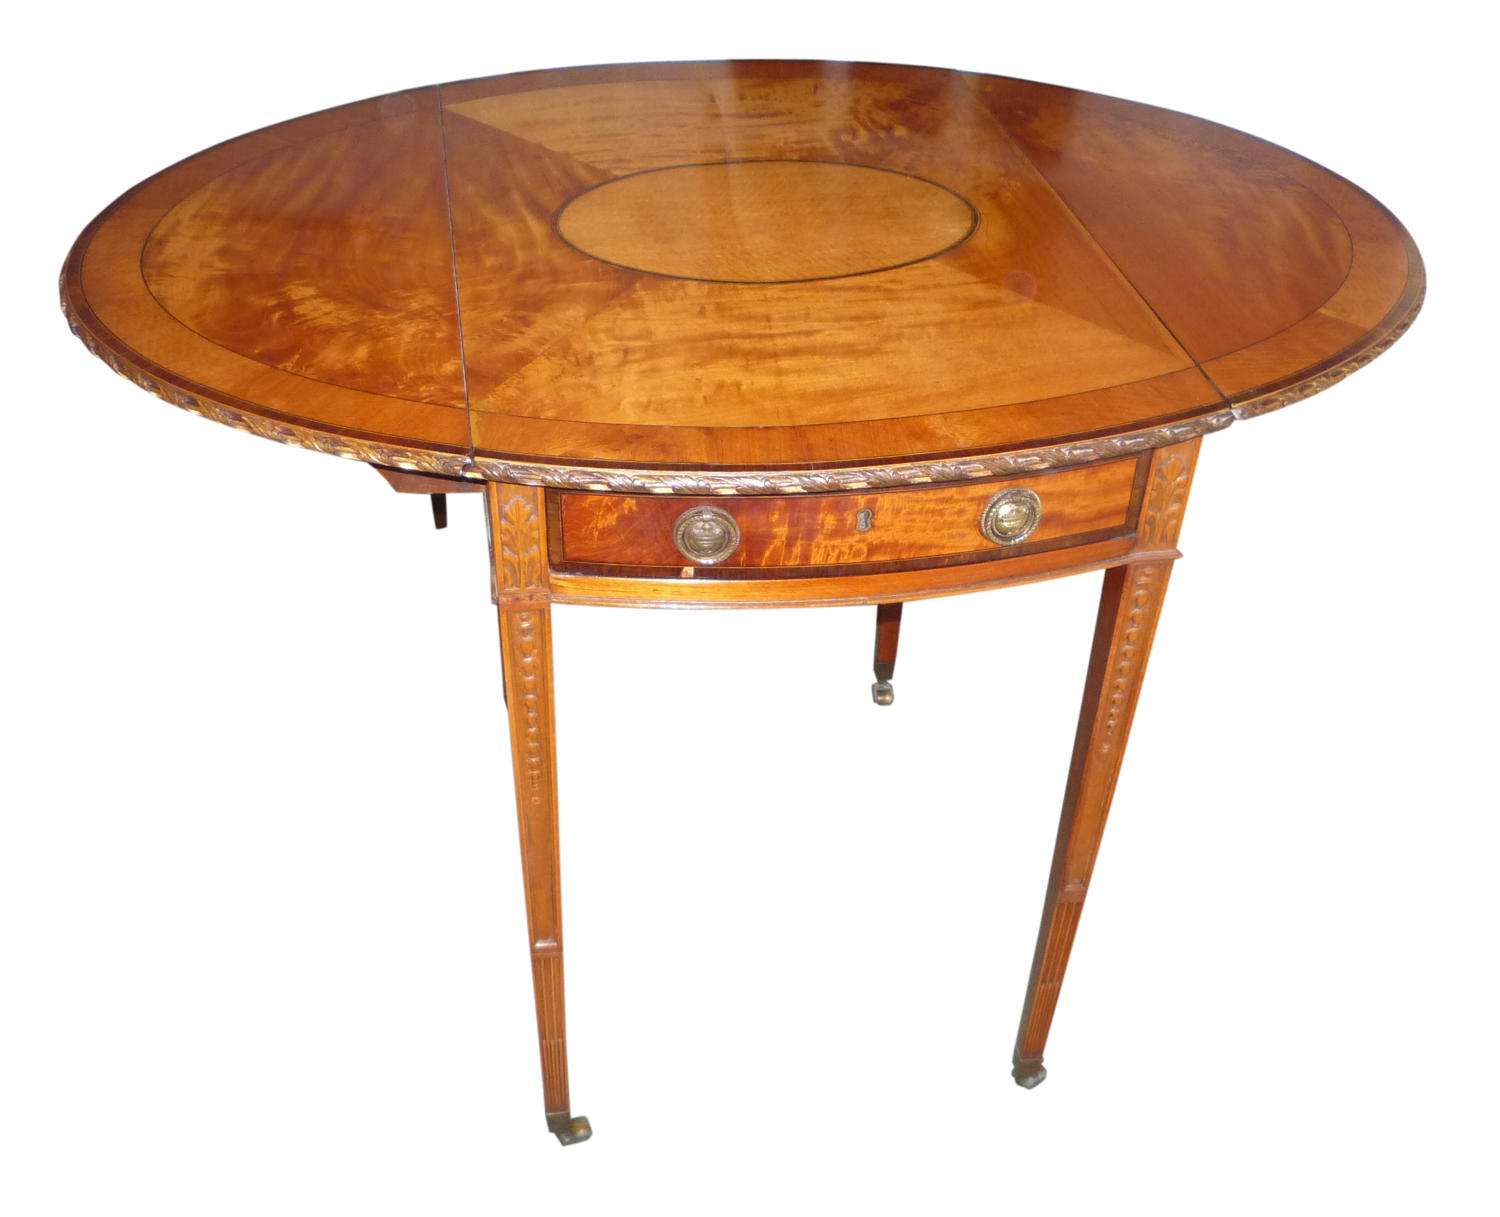 A fine inlaid satinwood Pembroke table.